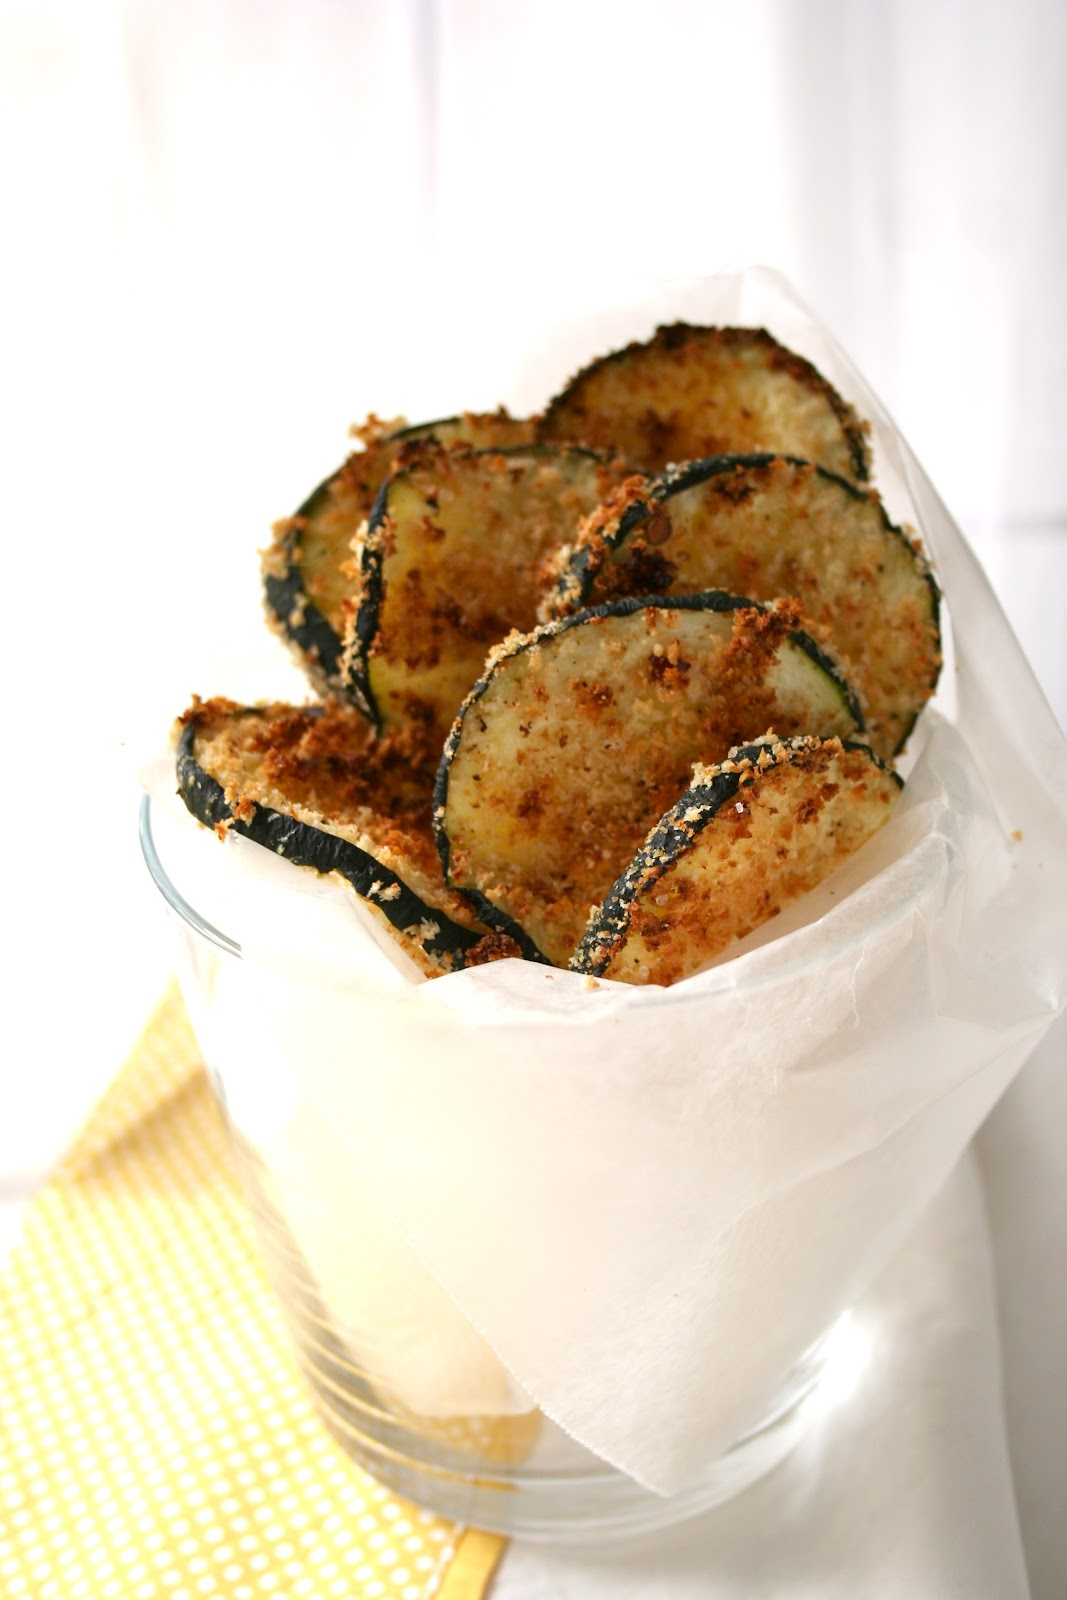 ... & Nutrition On A Budget: Frugal Healthy Recipe: Baked Zucchini Chips